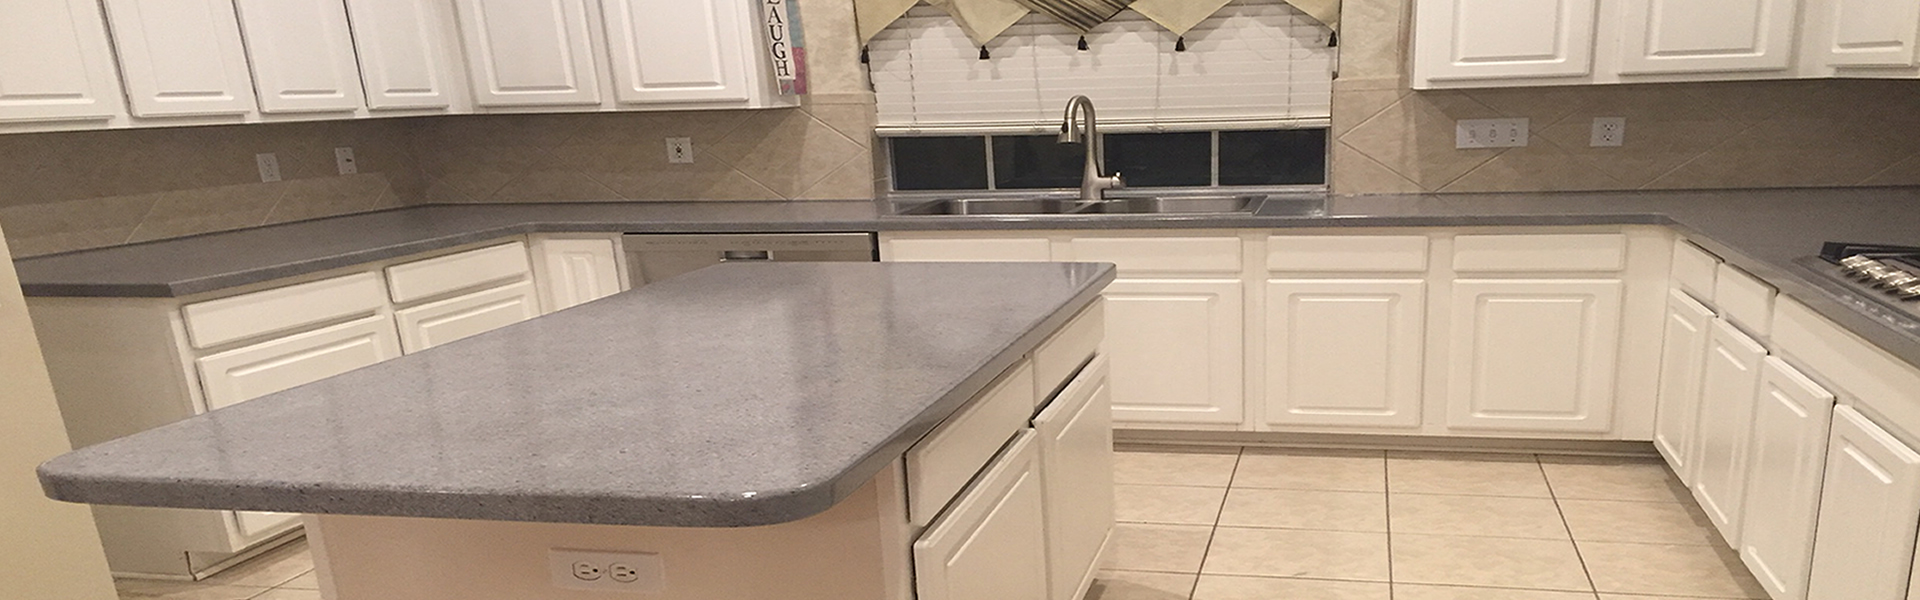 Incroyable BATHTUB REFINISHING SAN ANTONIO, Texas, CULTURED AND LAMINATE FORMICA,  AFFORDABLE CABINETS AND COUNTERTOPS RESURFACING, Cabinets Refacing, Tile,  ...